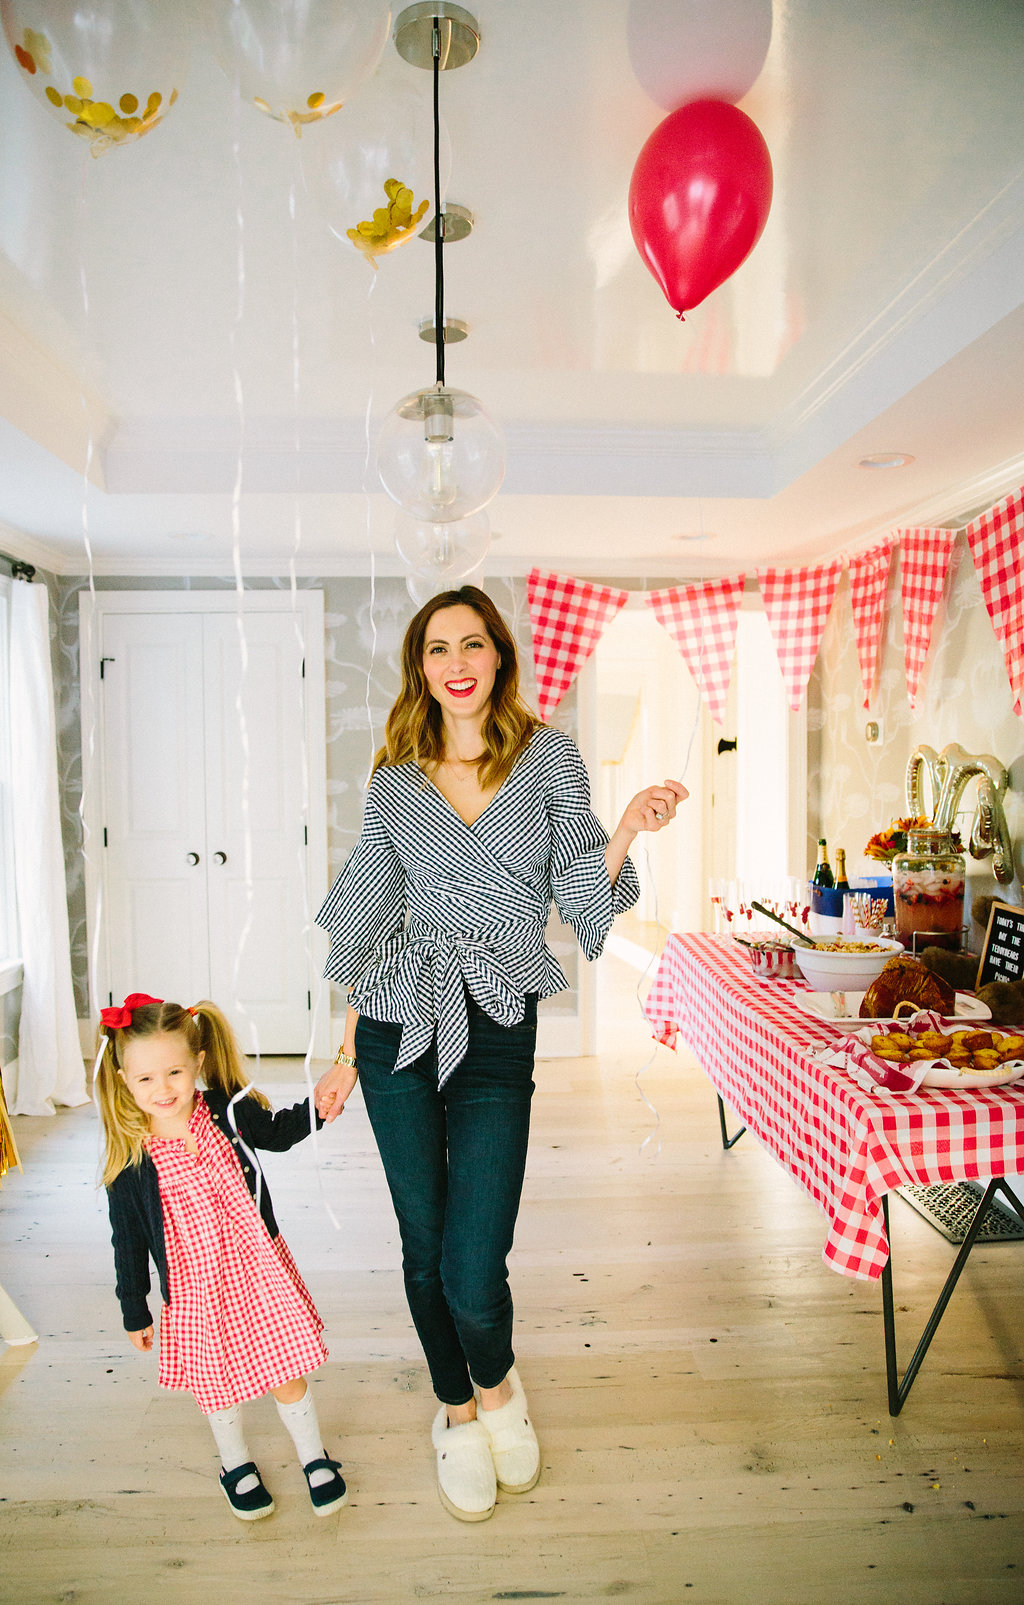 Eva Amurri Martino stands with three year old daughter Marlowe in the room decorated to celebrate Major Martino's first birthday with a teddy bear picnic theme